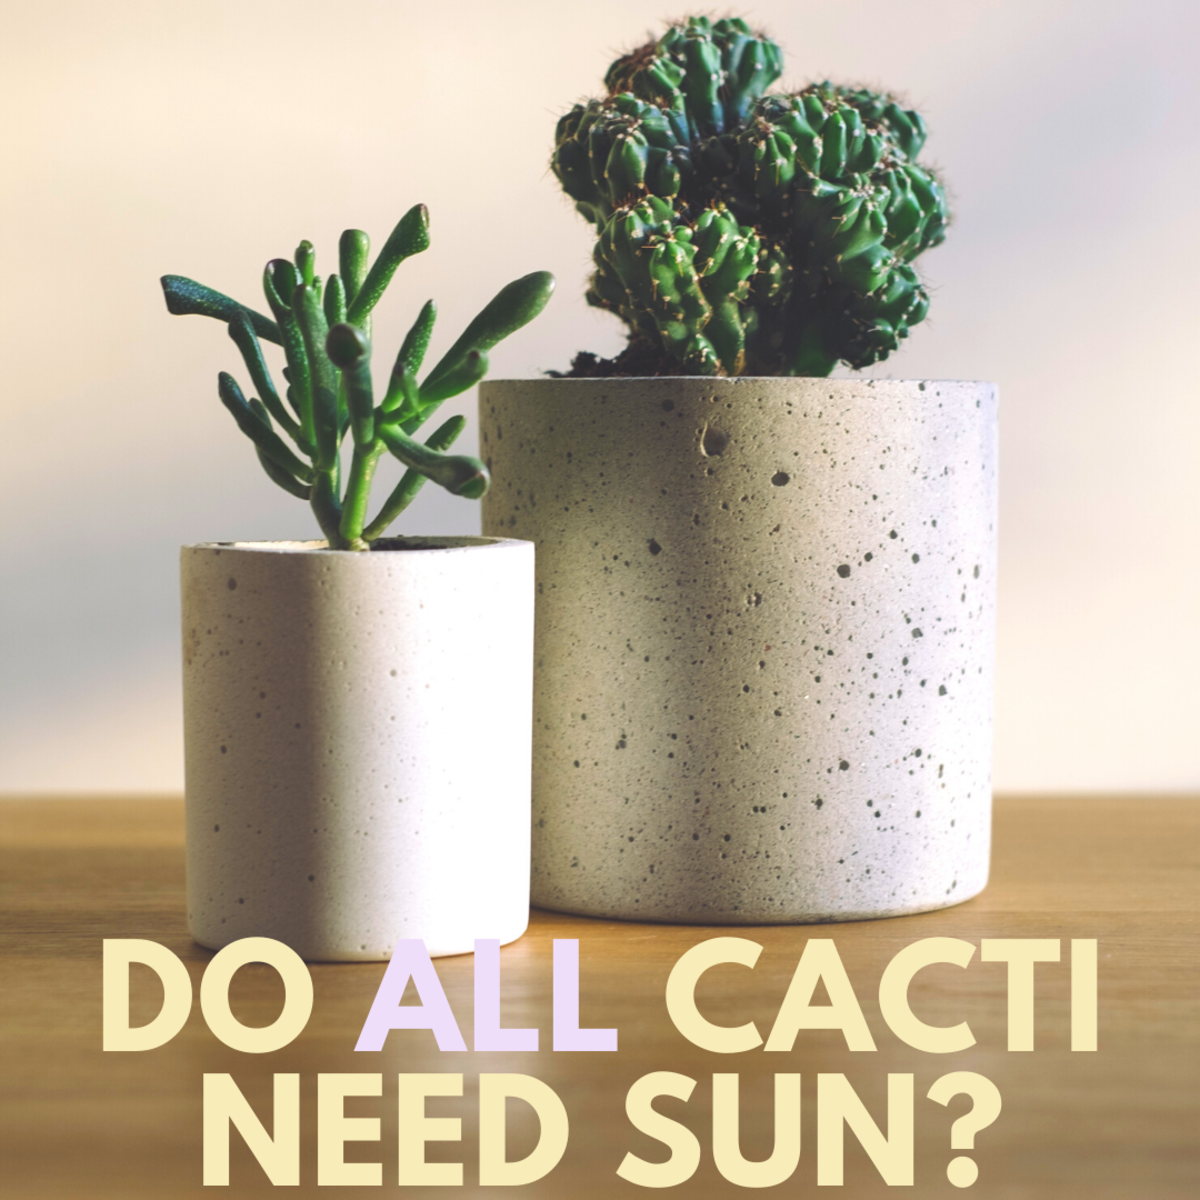 Find out which plant is best for you and your home.